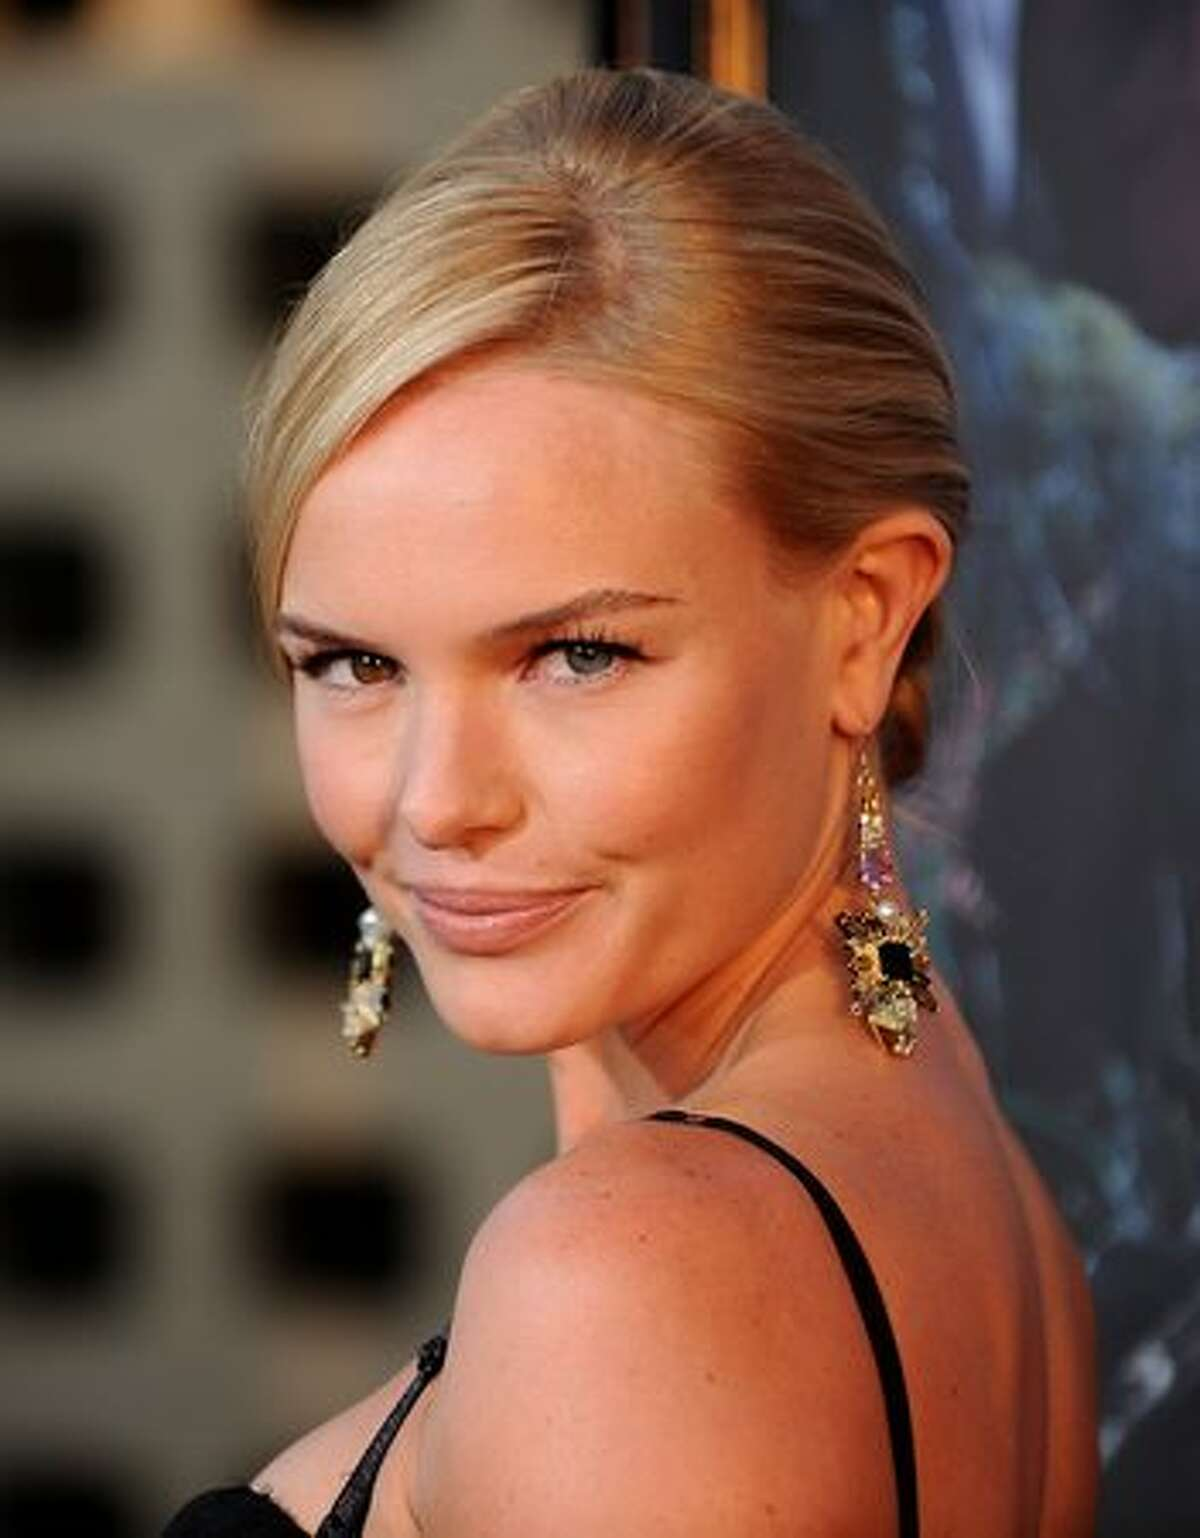 """Actress Kate Bosworth arrives at the premiere of HBO's """"True Blood"""" Season 3 at The Cinerama Dome."""